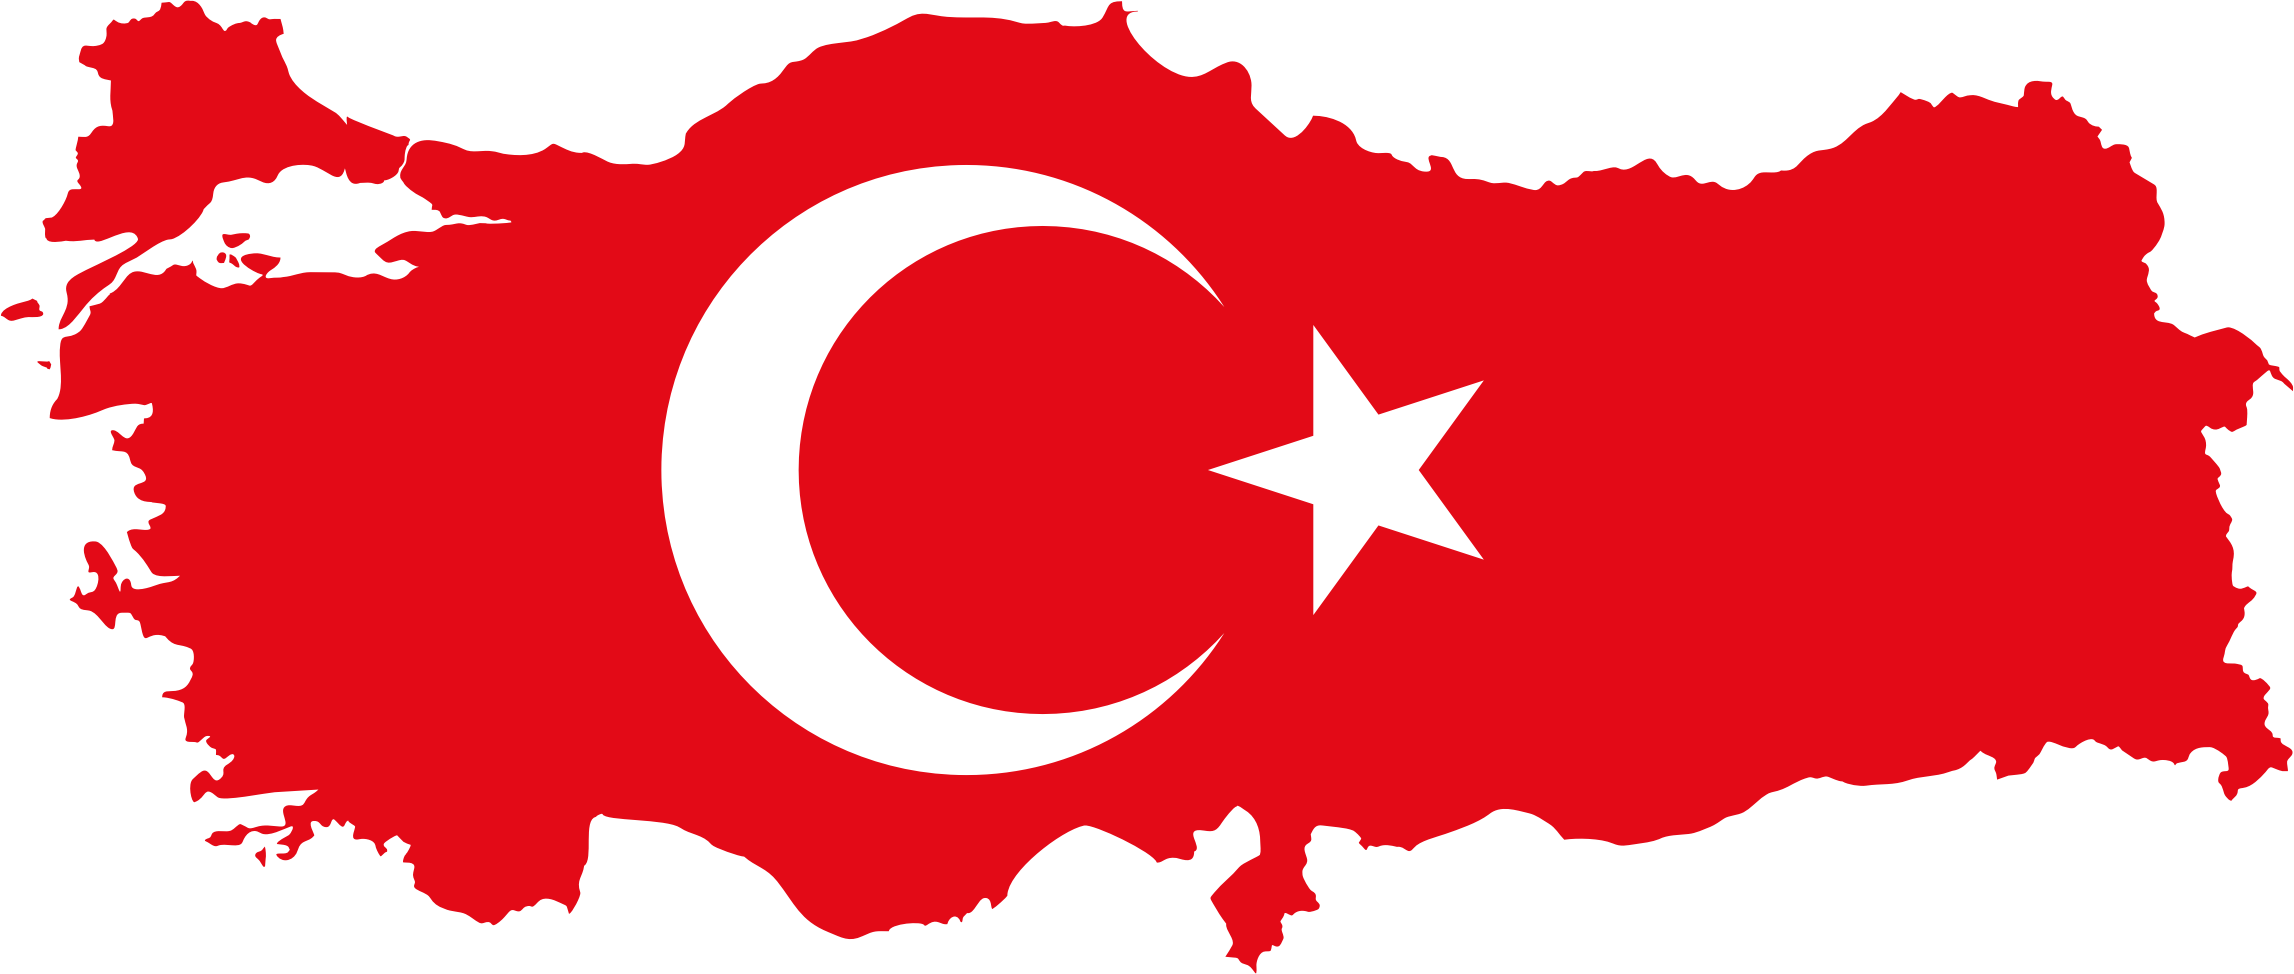 Clipart turkey country.  collection of high